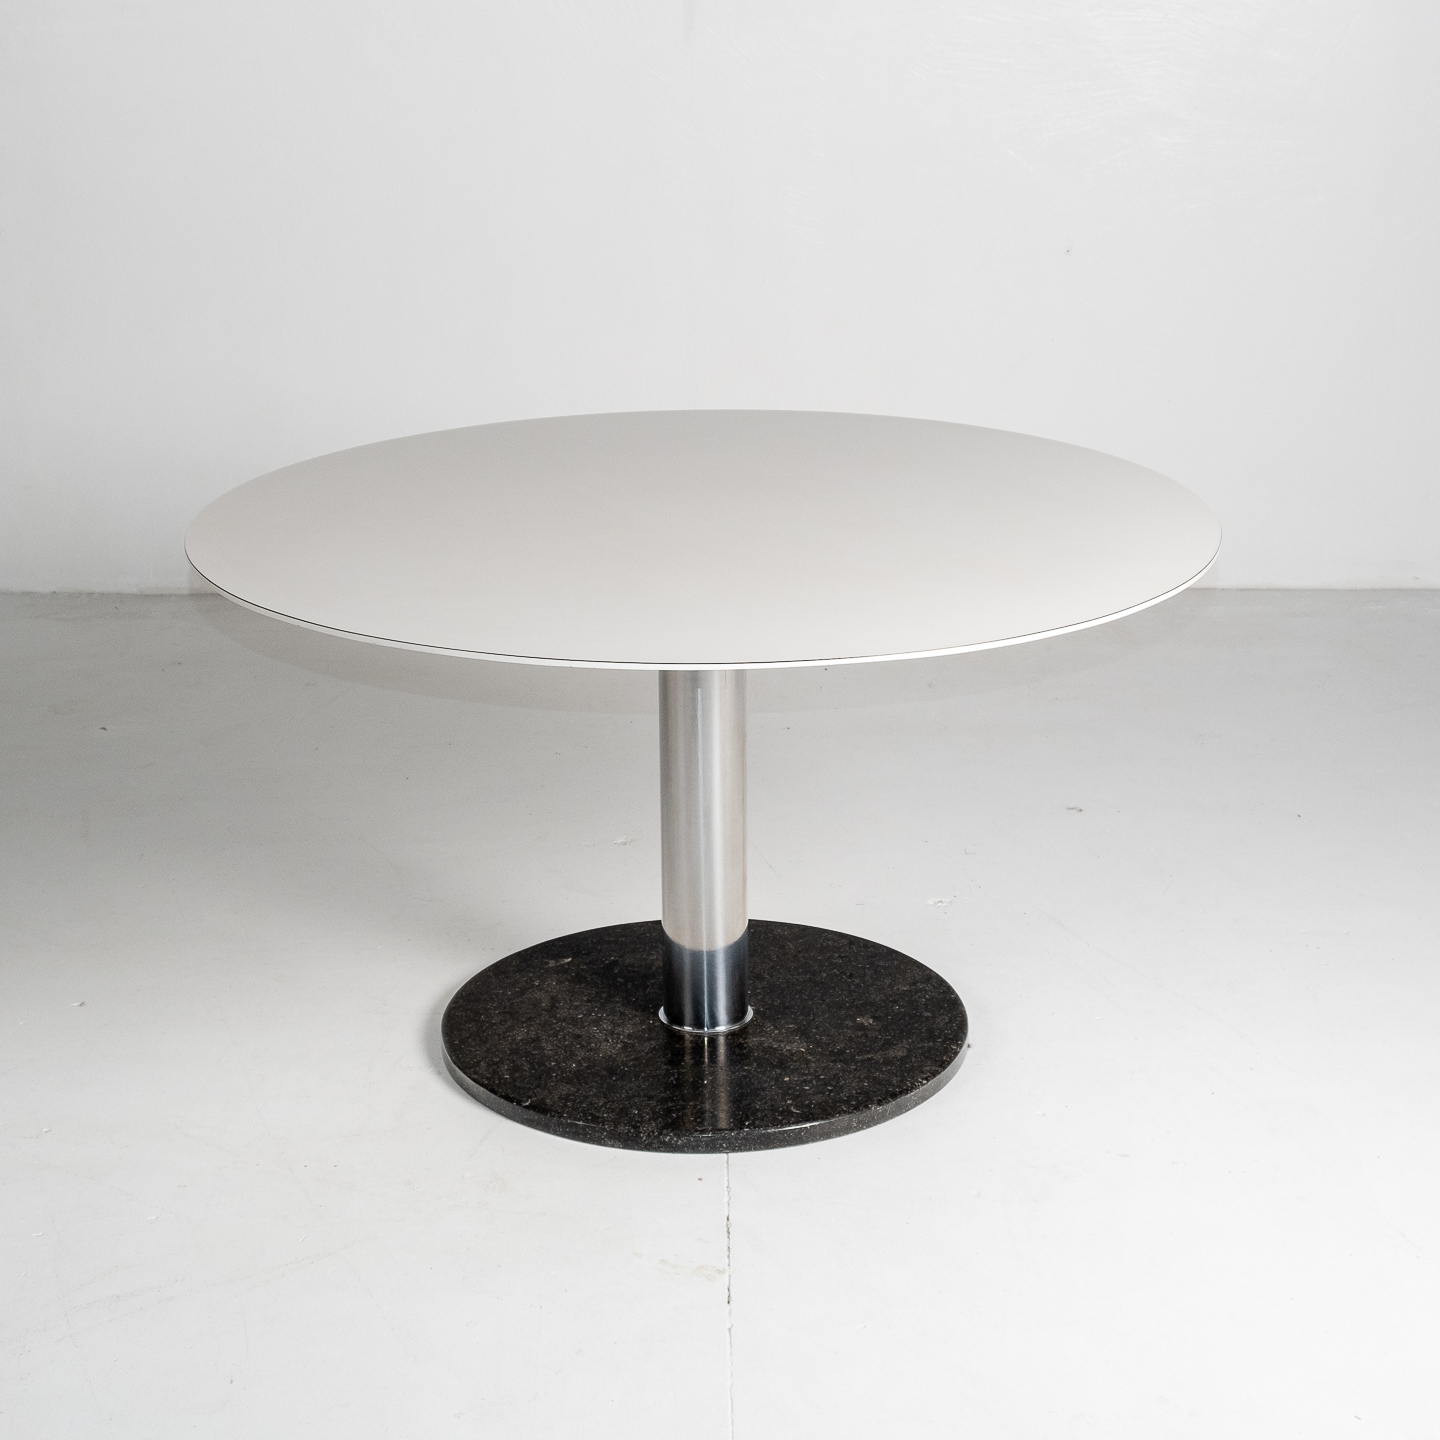 Dining Table With Slate Base And White Laminate Top By Alfred Hendrickx For Belform, 1960s, Belgium 67